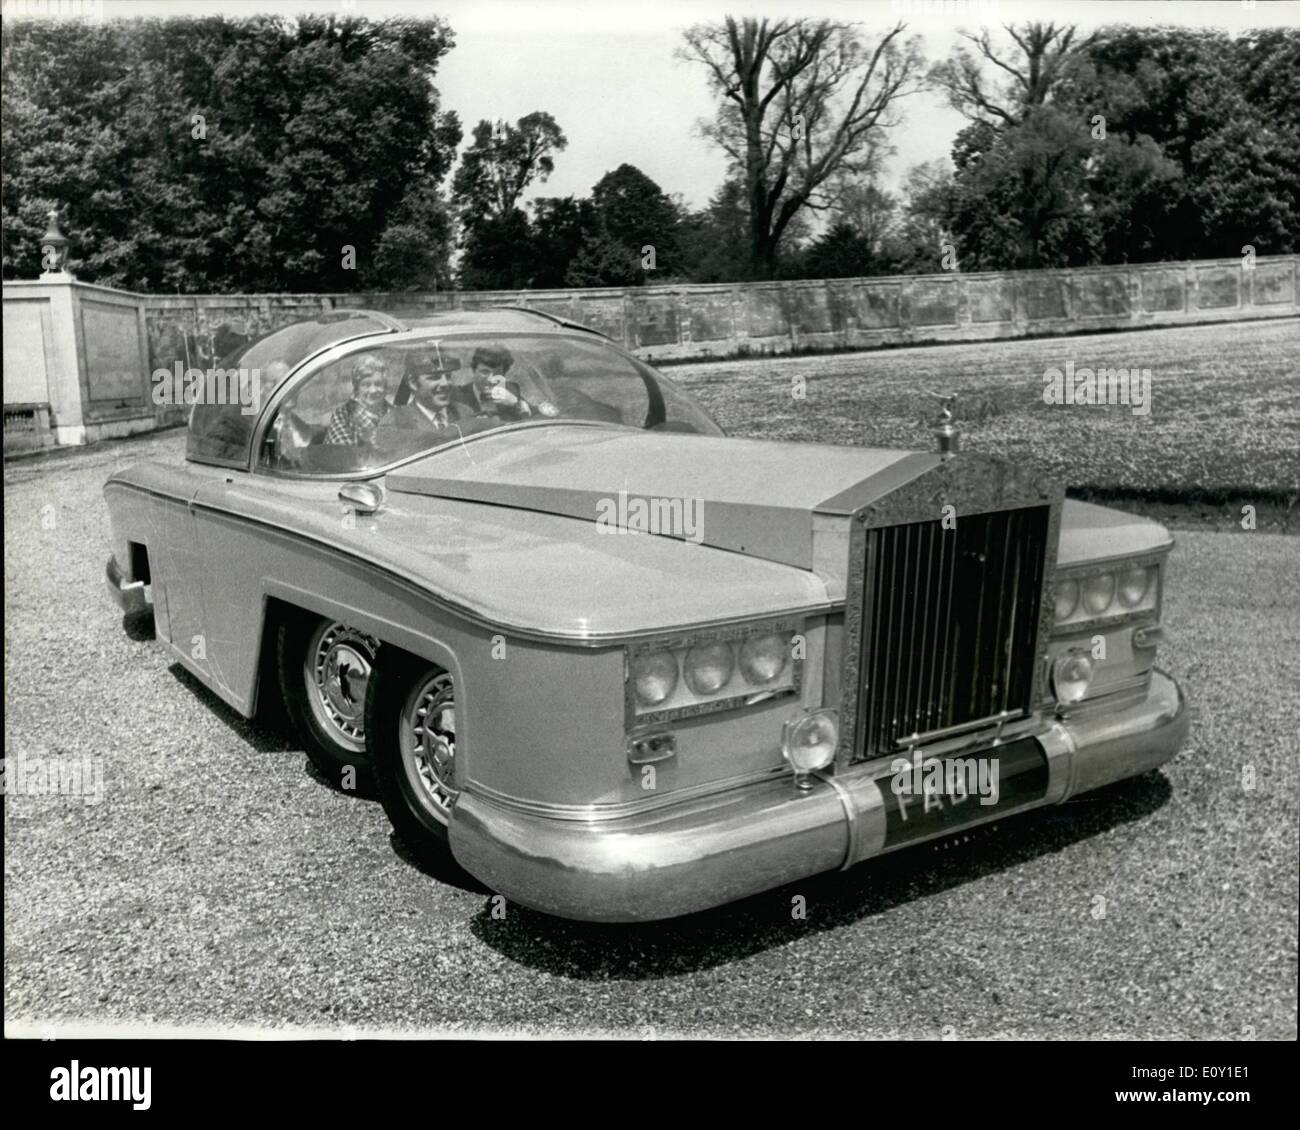 may 05 1968 the world 39 s biggest and most expensive car the stock photo 69435353 alamy. Black Bedroom Furniture Sets. Home Design Ideas